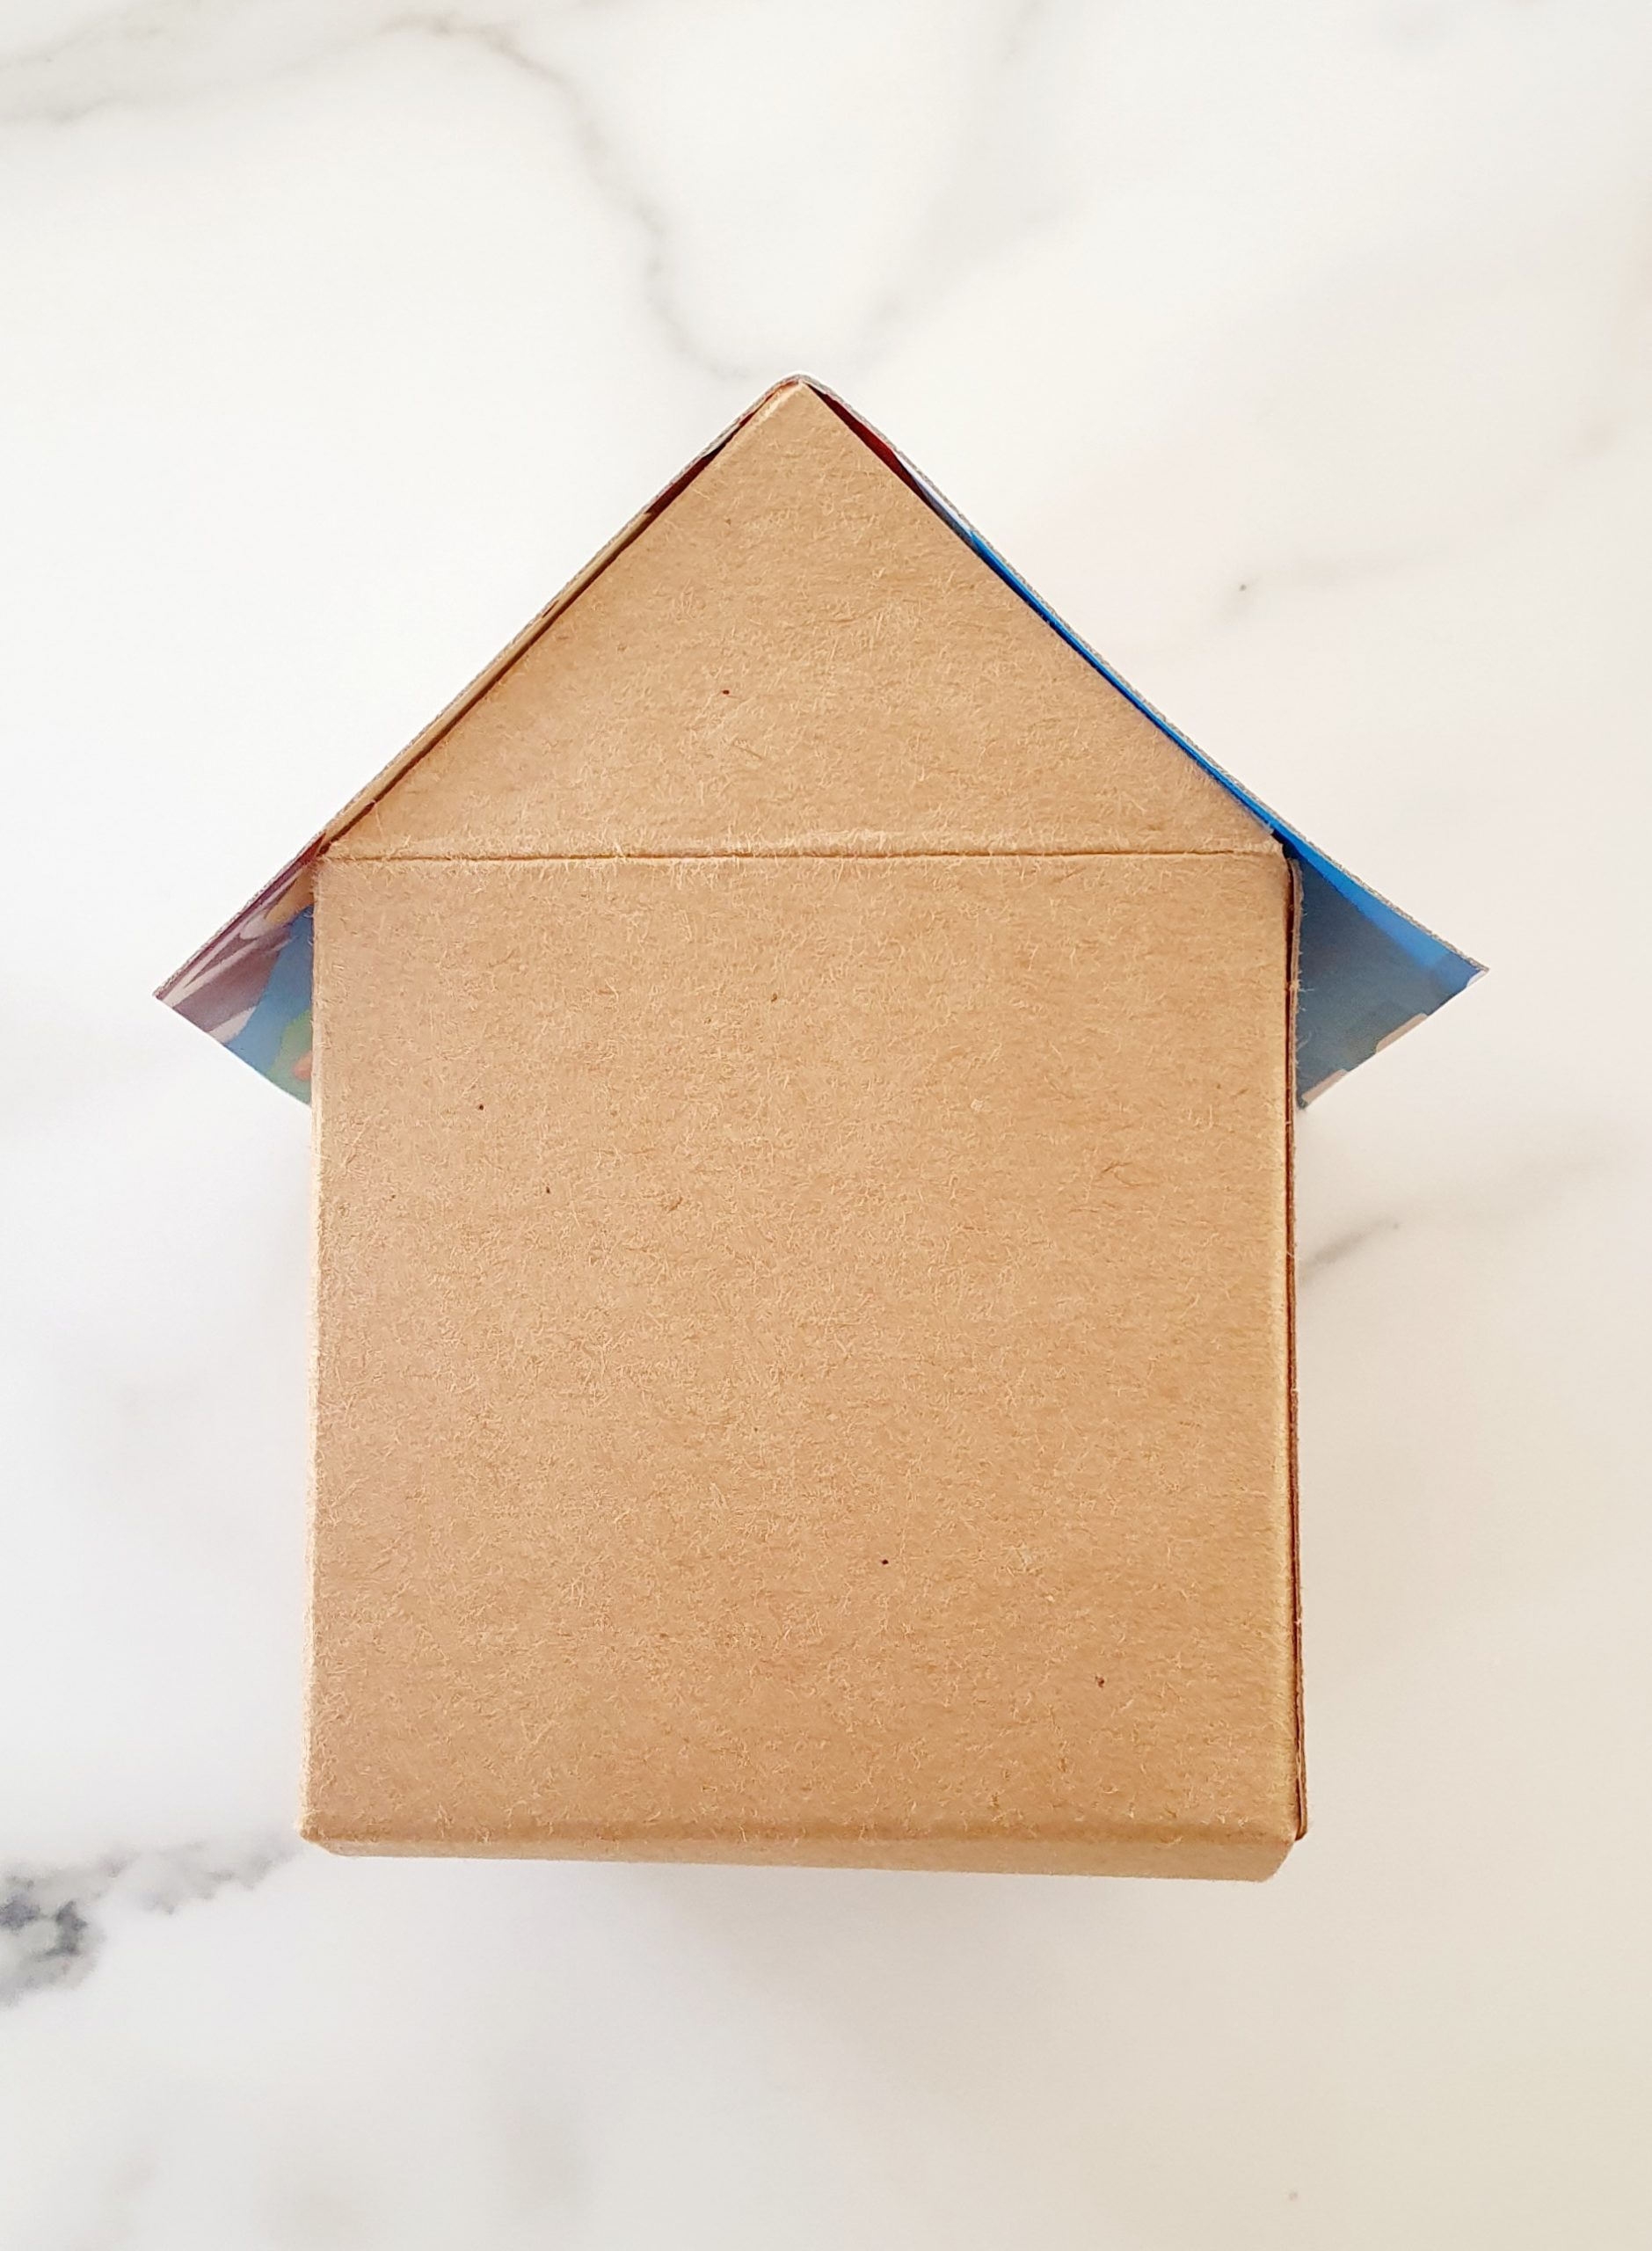 Birdhouse Treasure Box | A Few Small Adventures